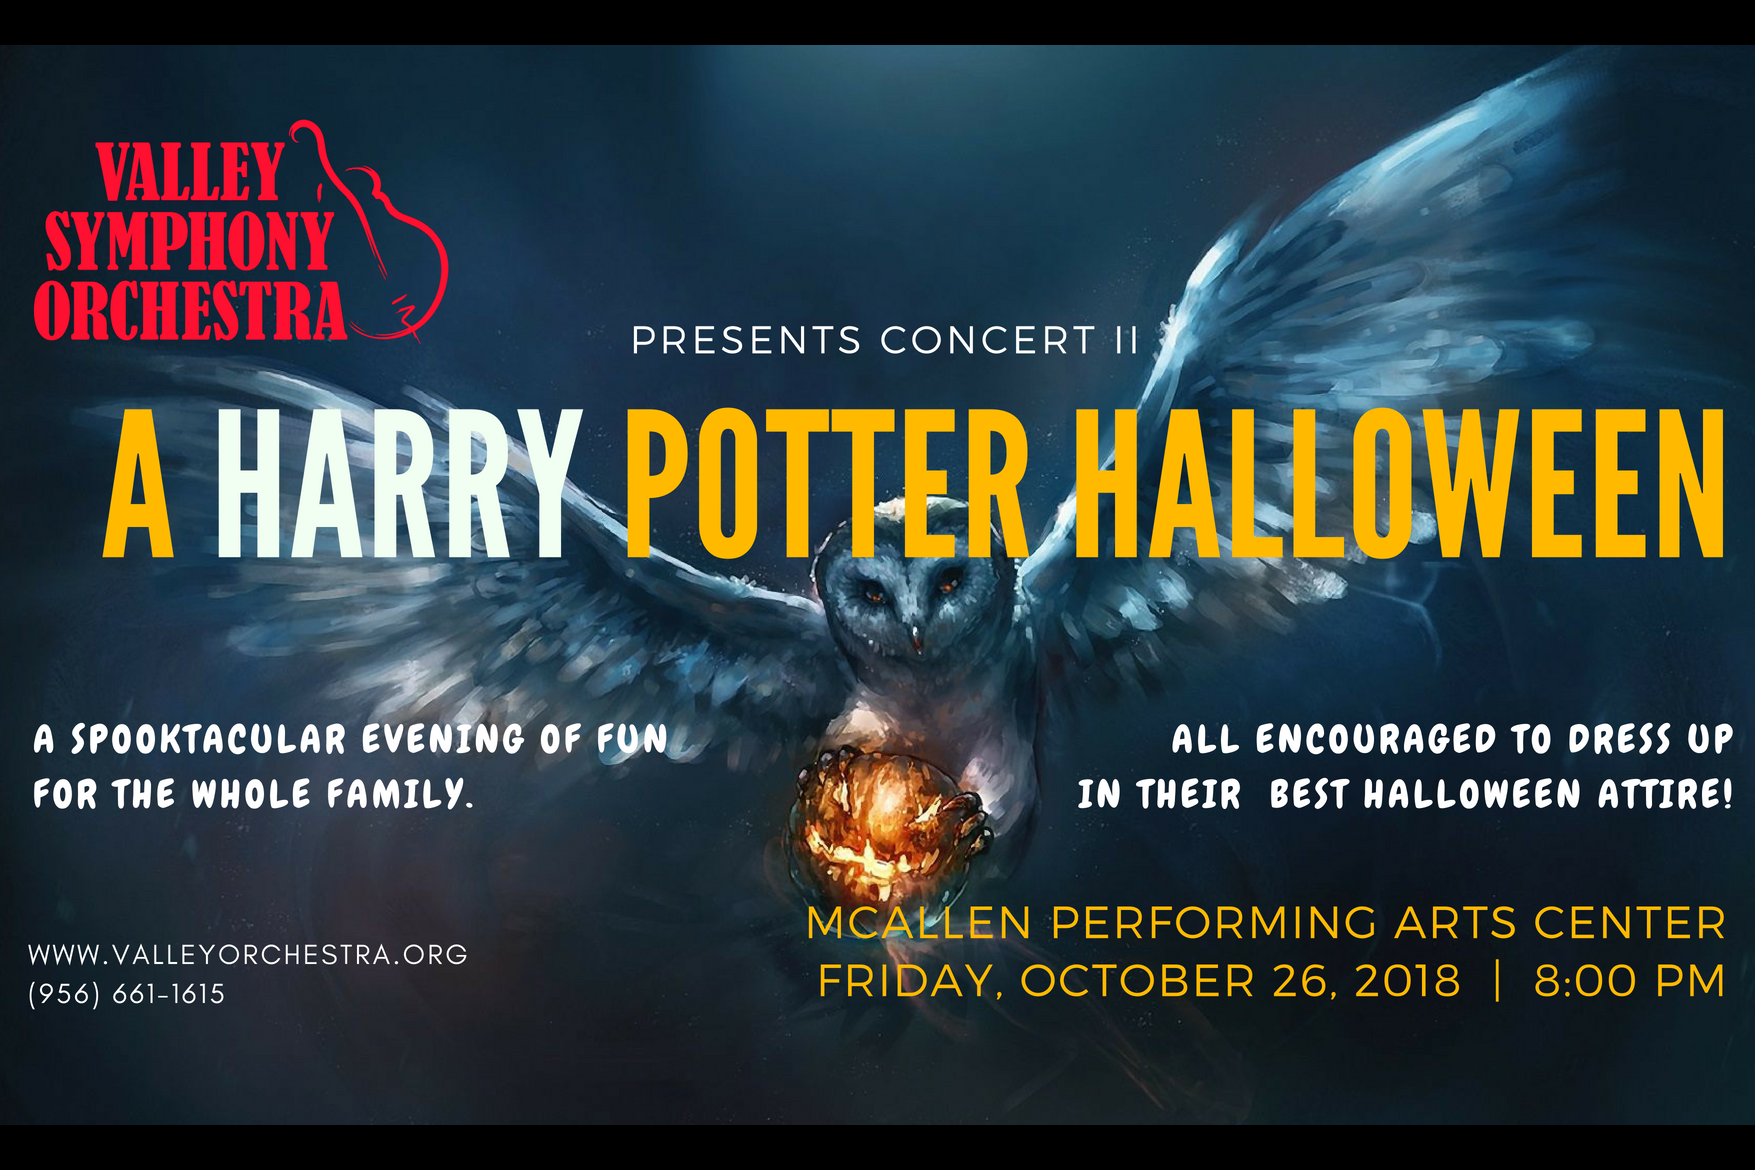 a harry potter halloween - vso concert ii | explore mcallen